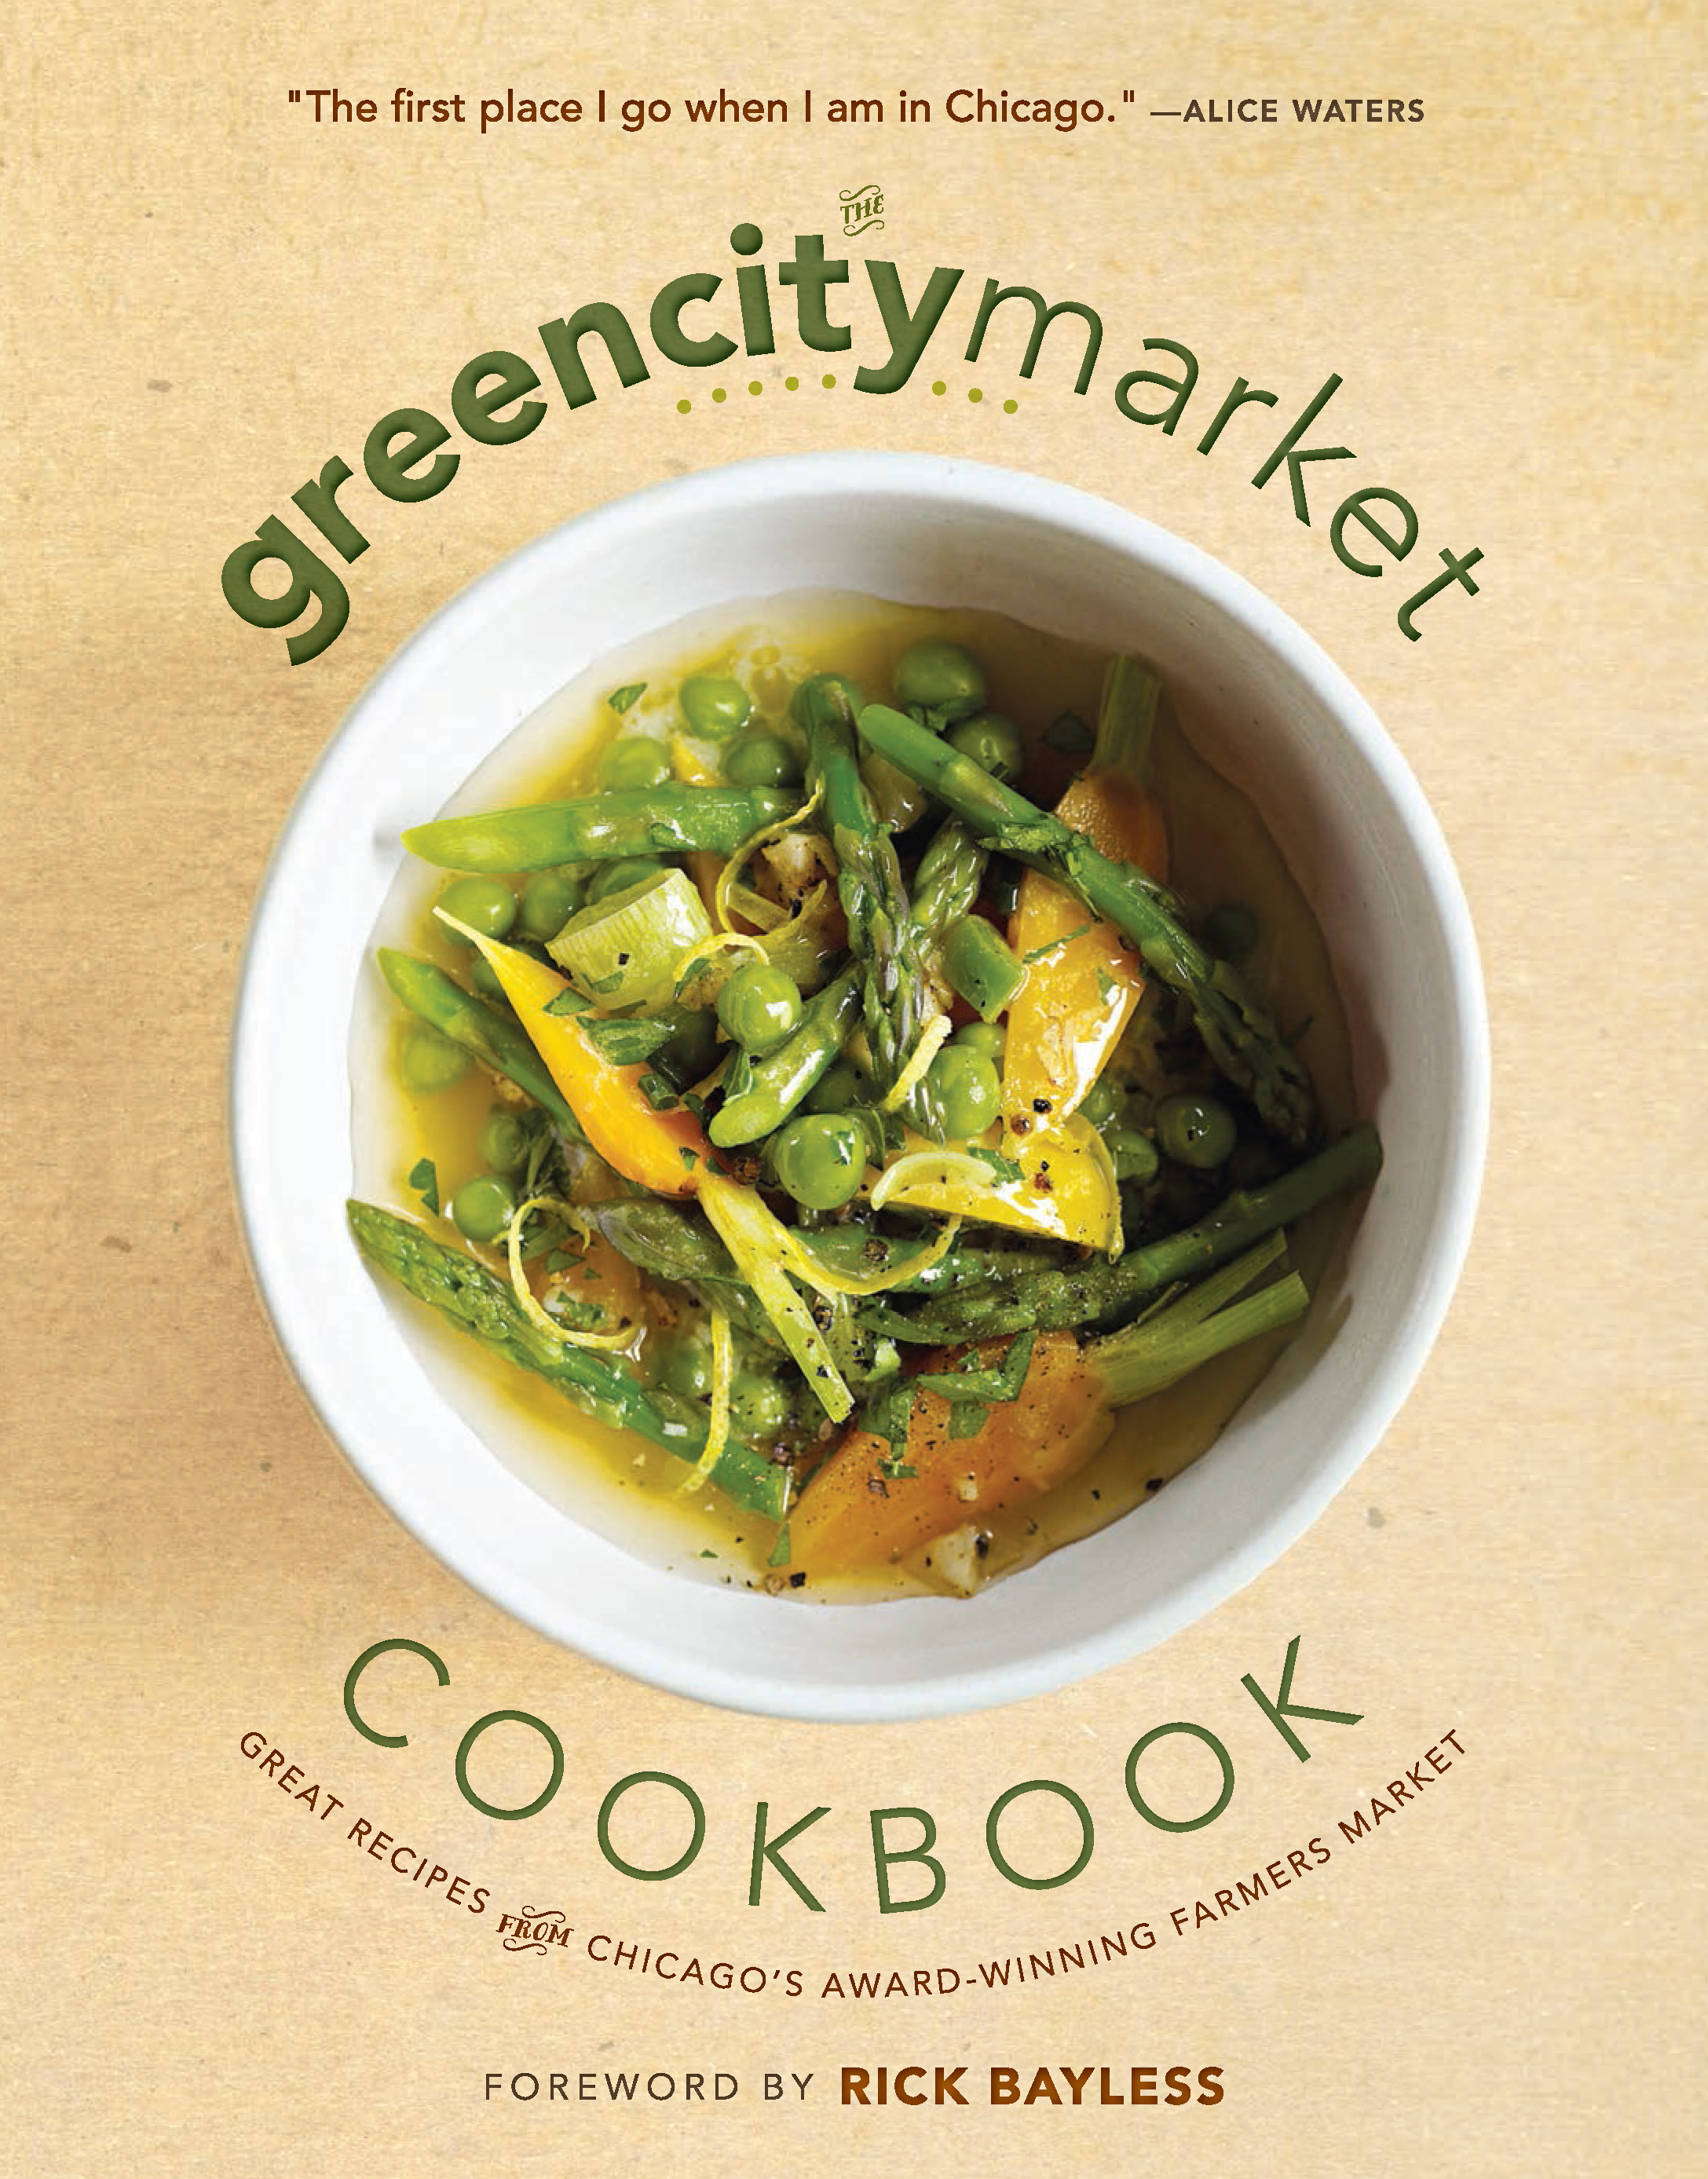 Green City Market Cookbook_Page_01.png